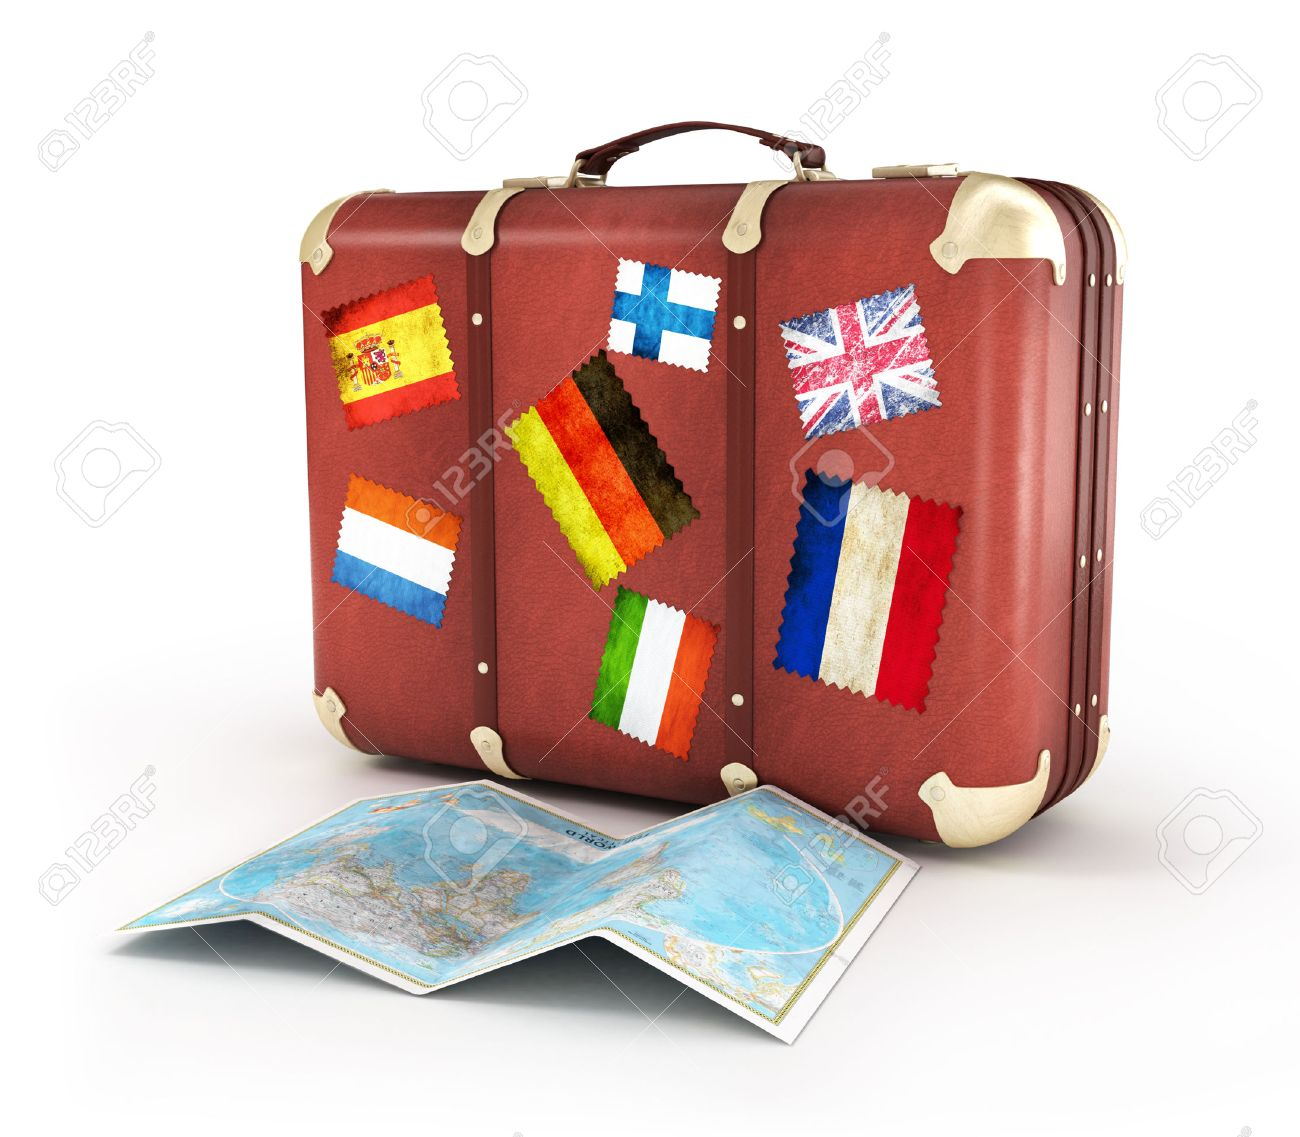 Old suitcase with world map and striples flags on white background old suitcase with world map and striples flags on white background stock photo 28281662 gumiabroncs Image collections